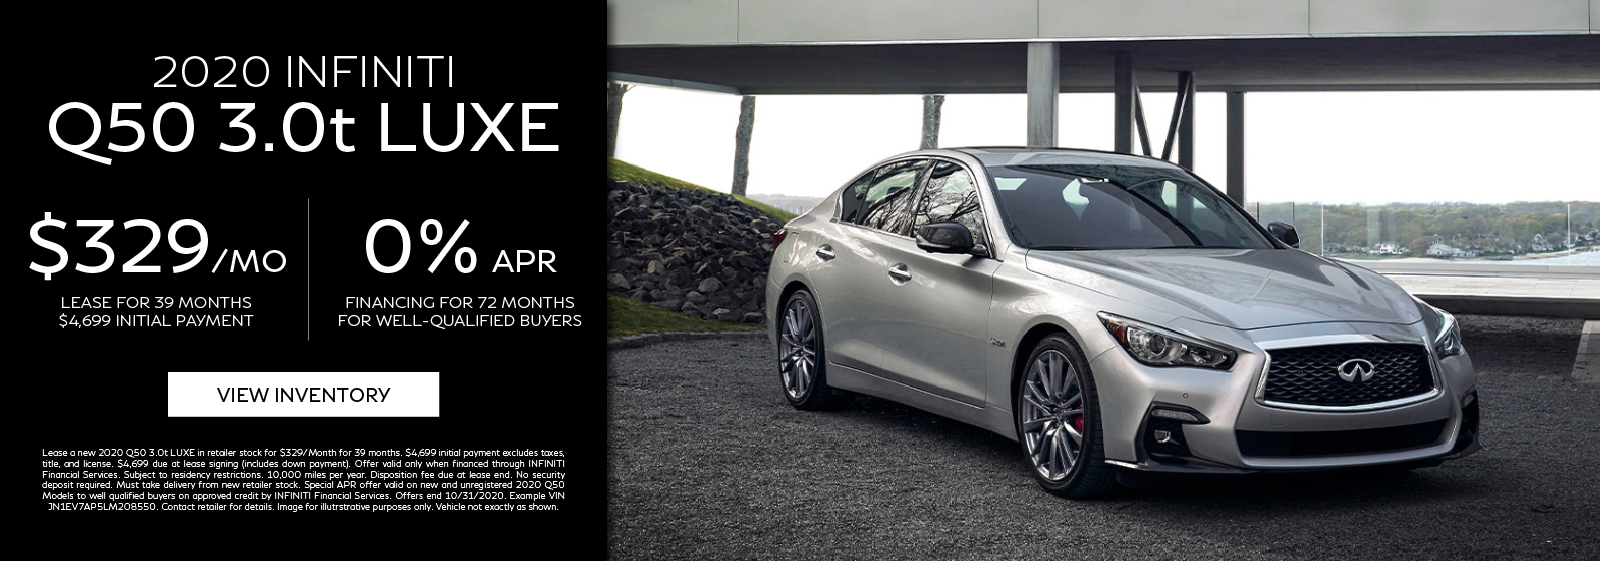 Lease a new 2020 Q50 3.0t LUXE for $329 per month for 39 months or get 0% APR for 72 months. Click to view inventory.